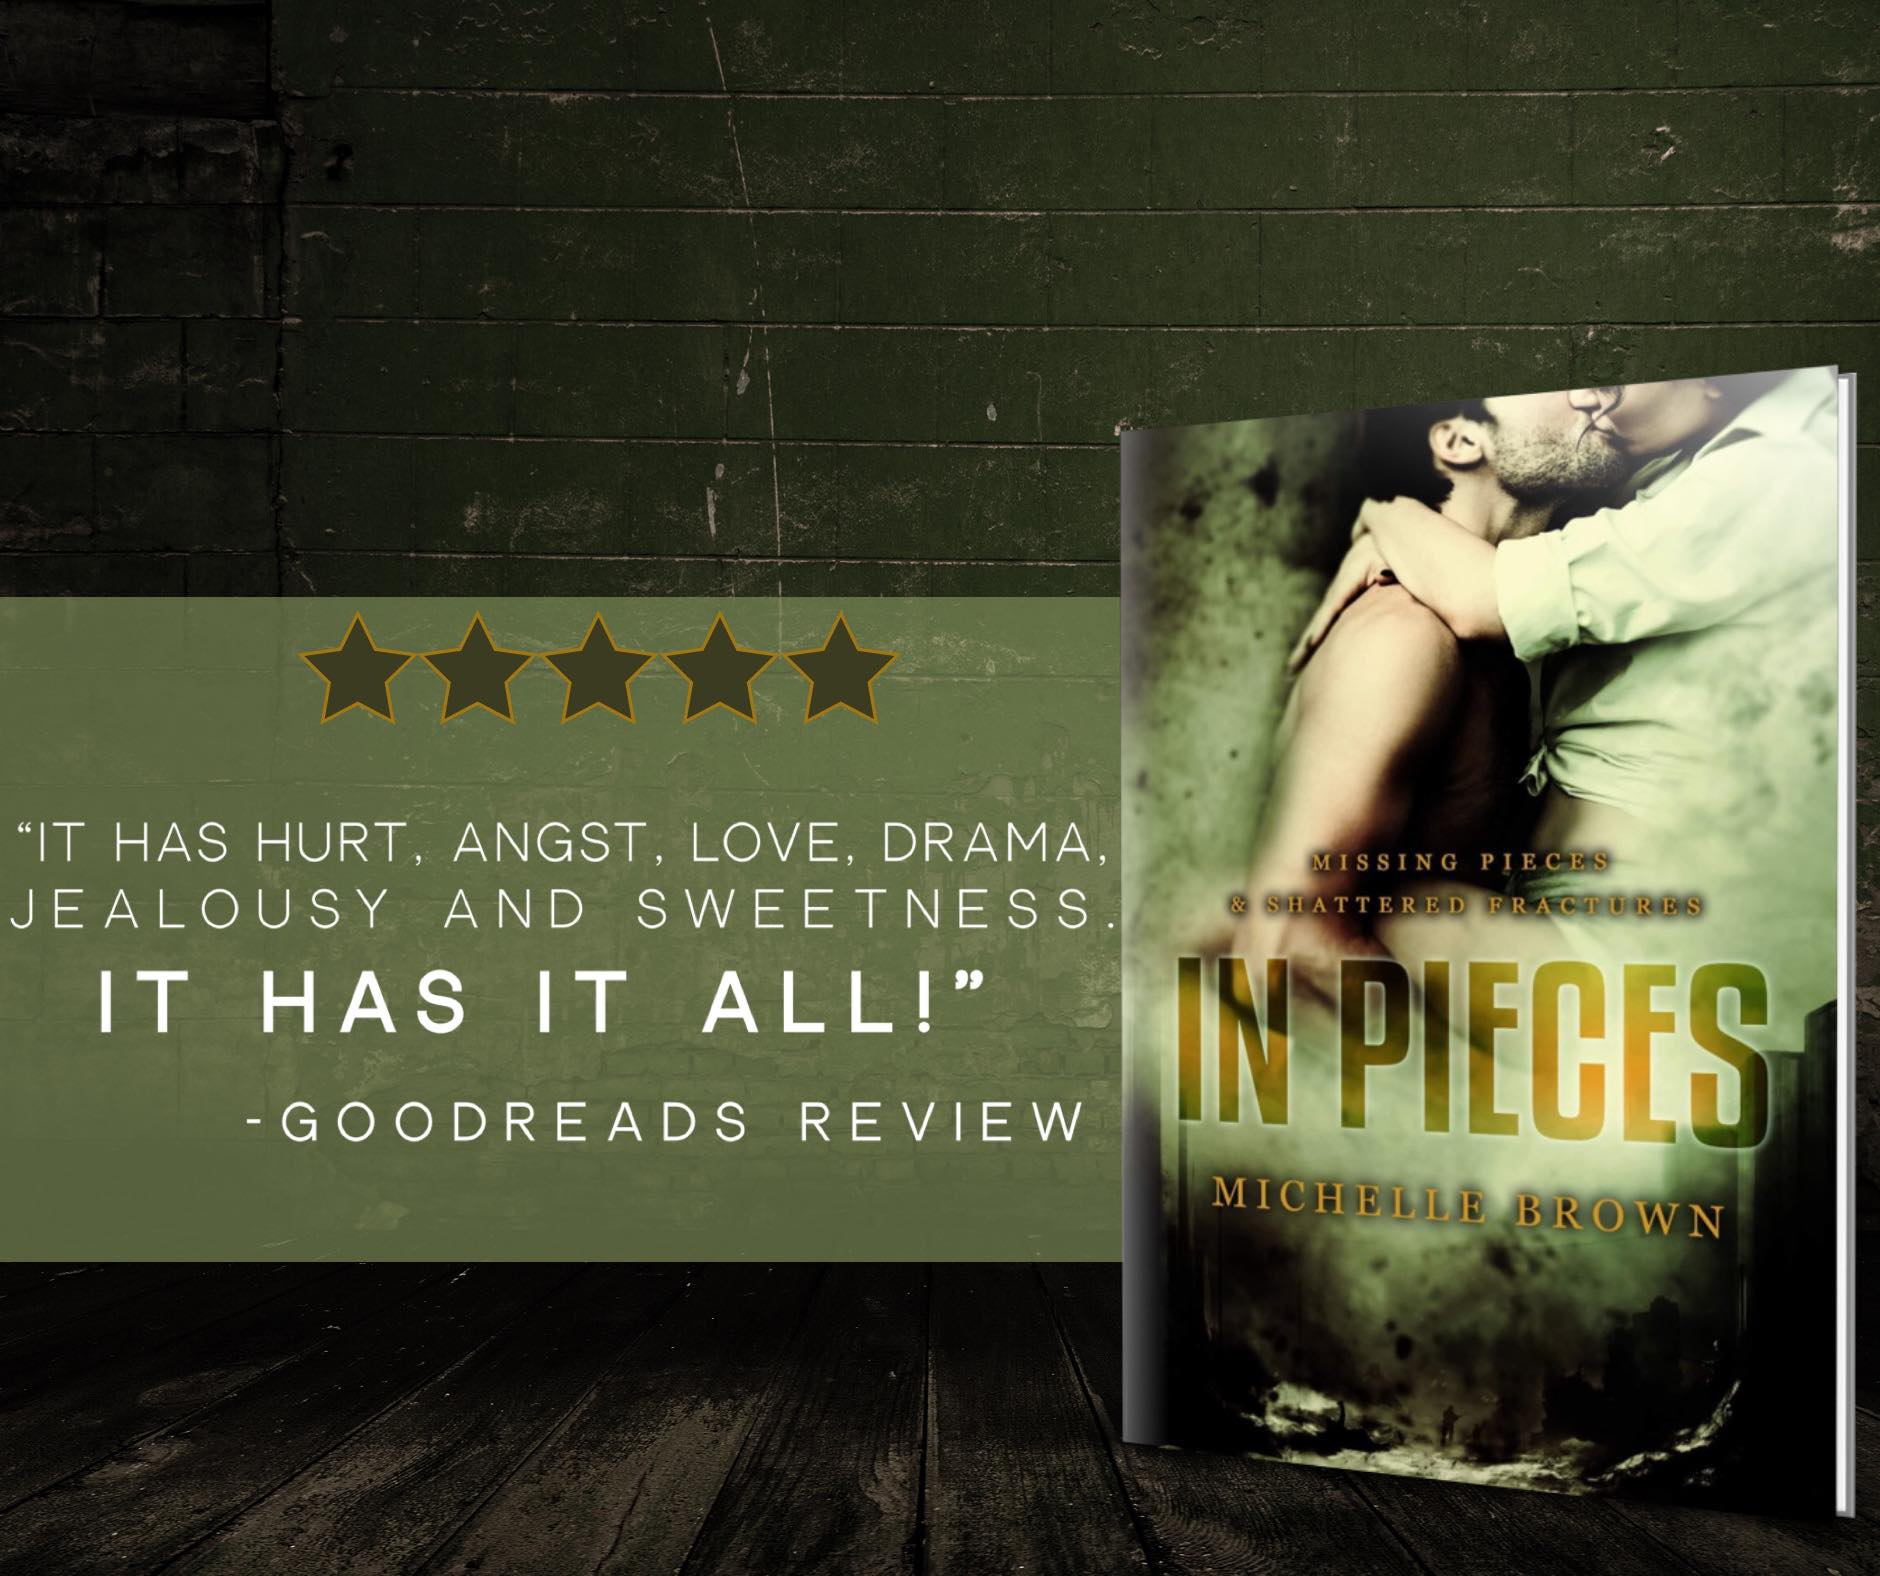 in pieces review